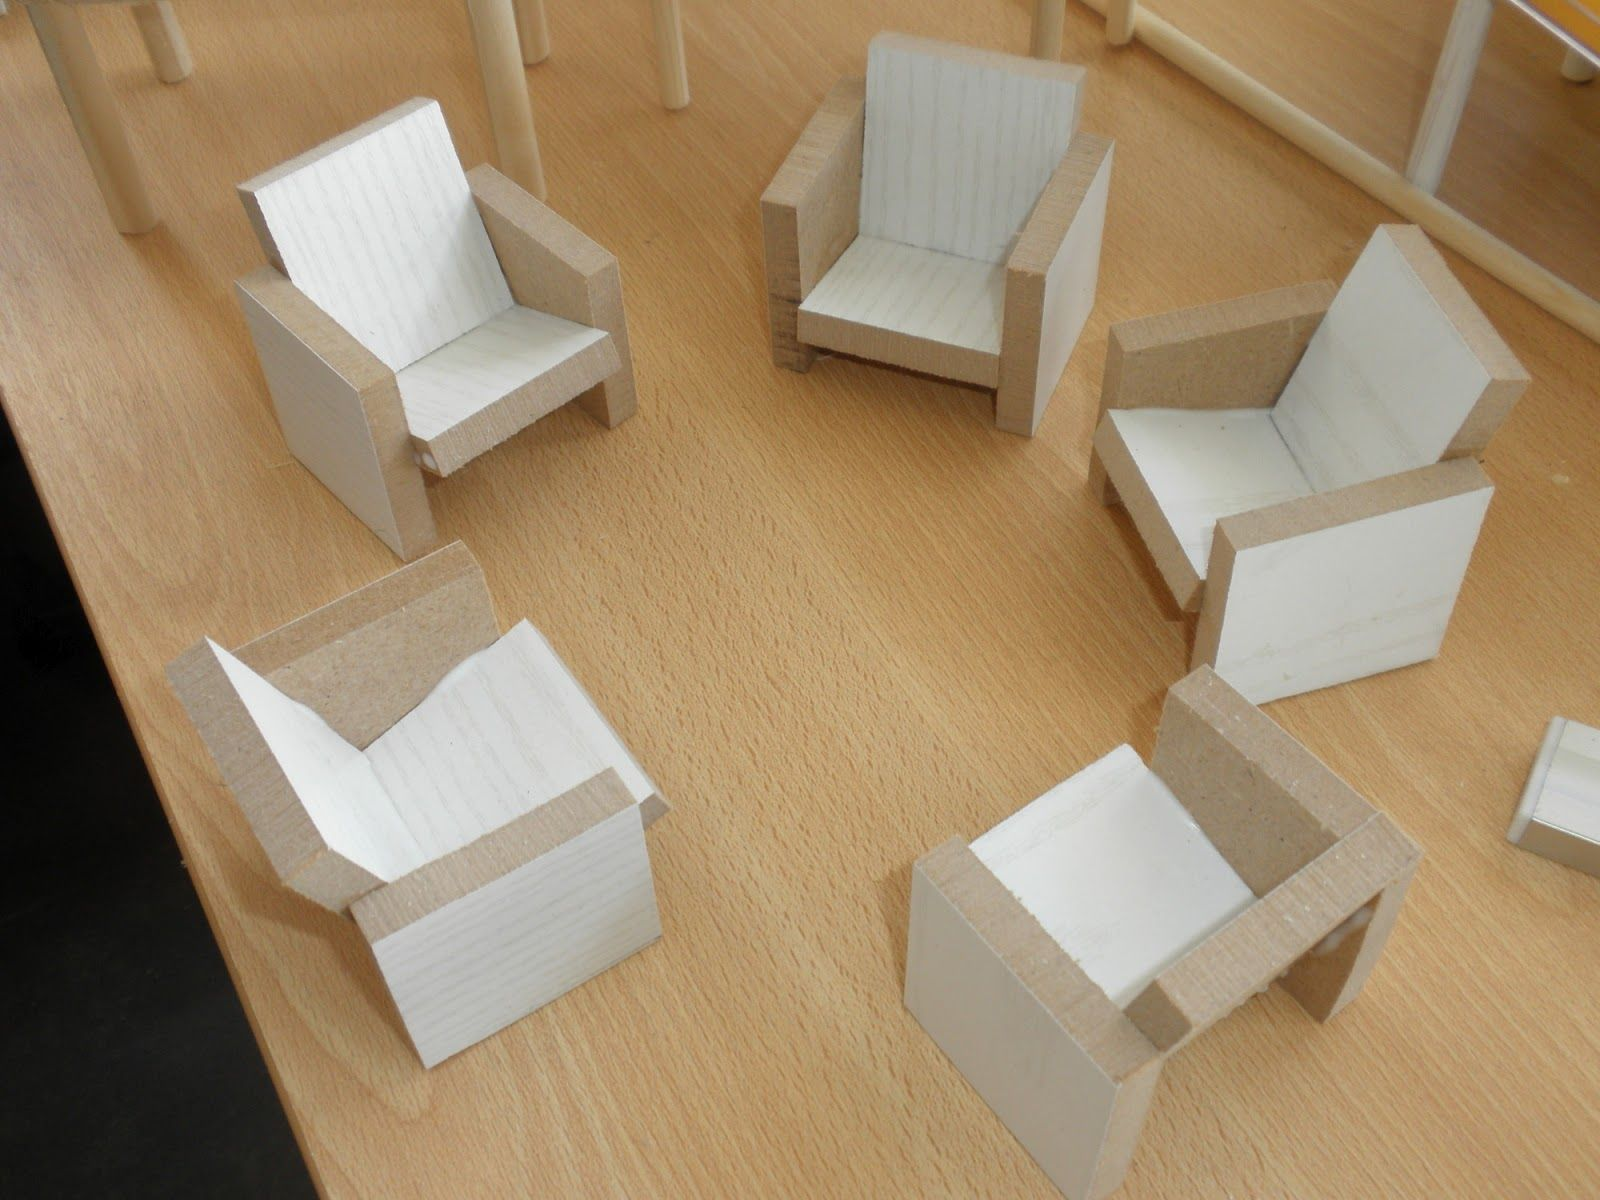 How To Make Simple Chunky Dollhouse Furniture From Squares Of Thick